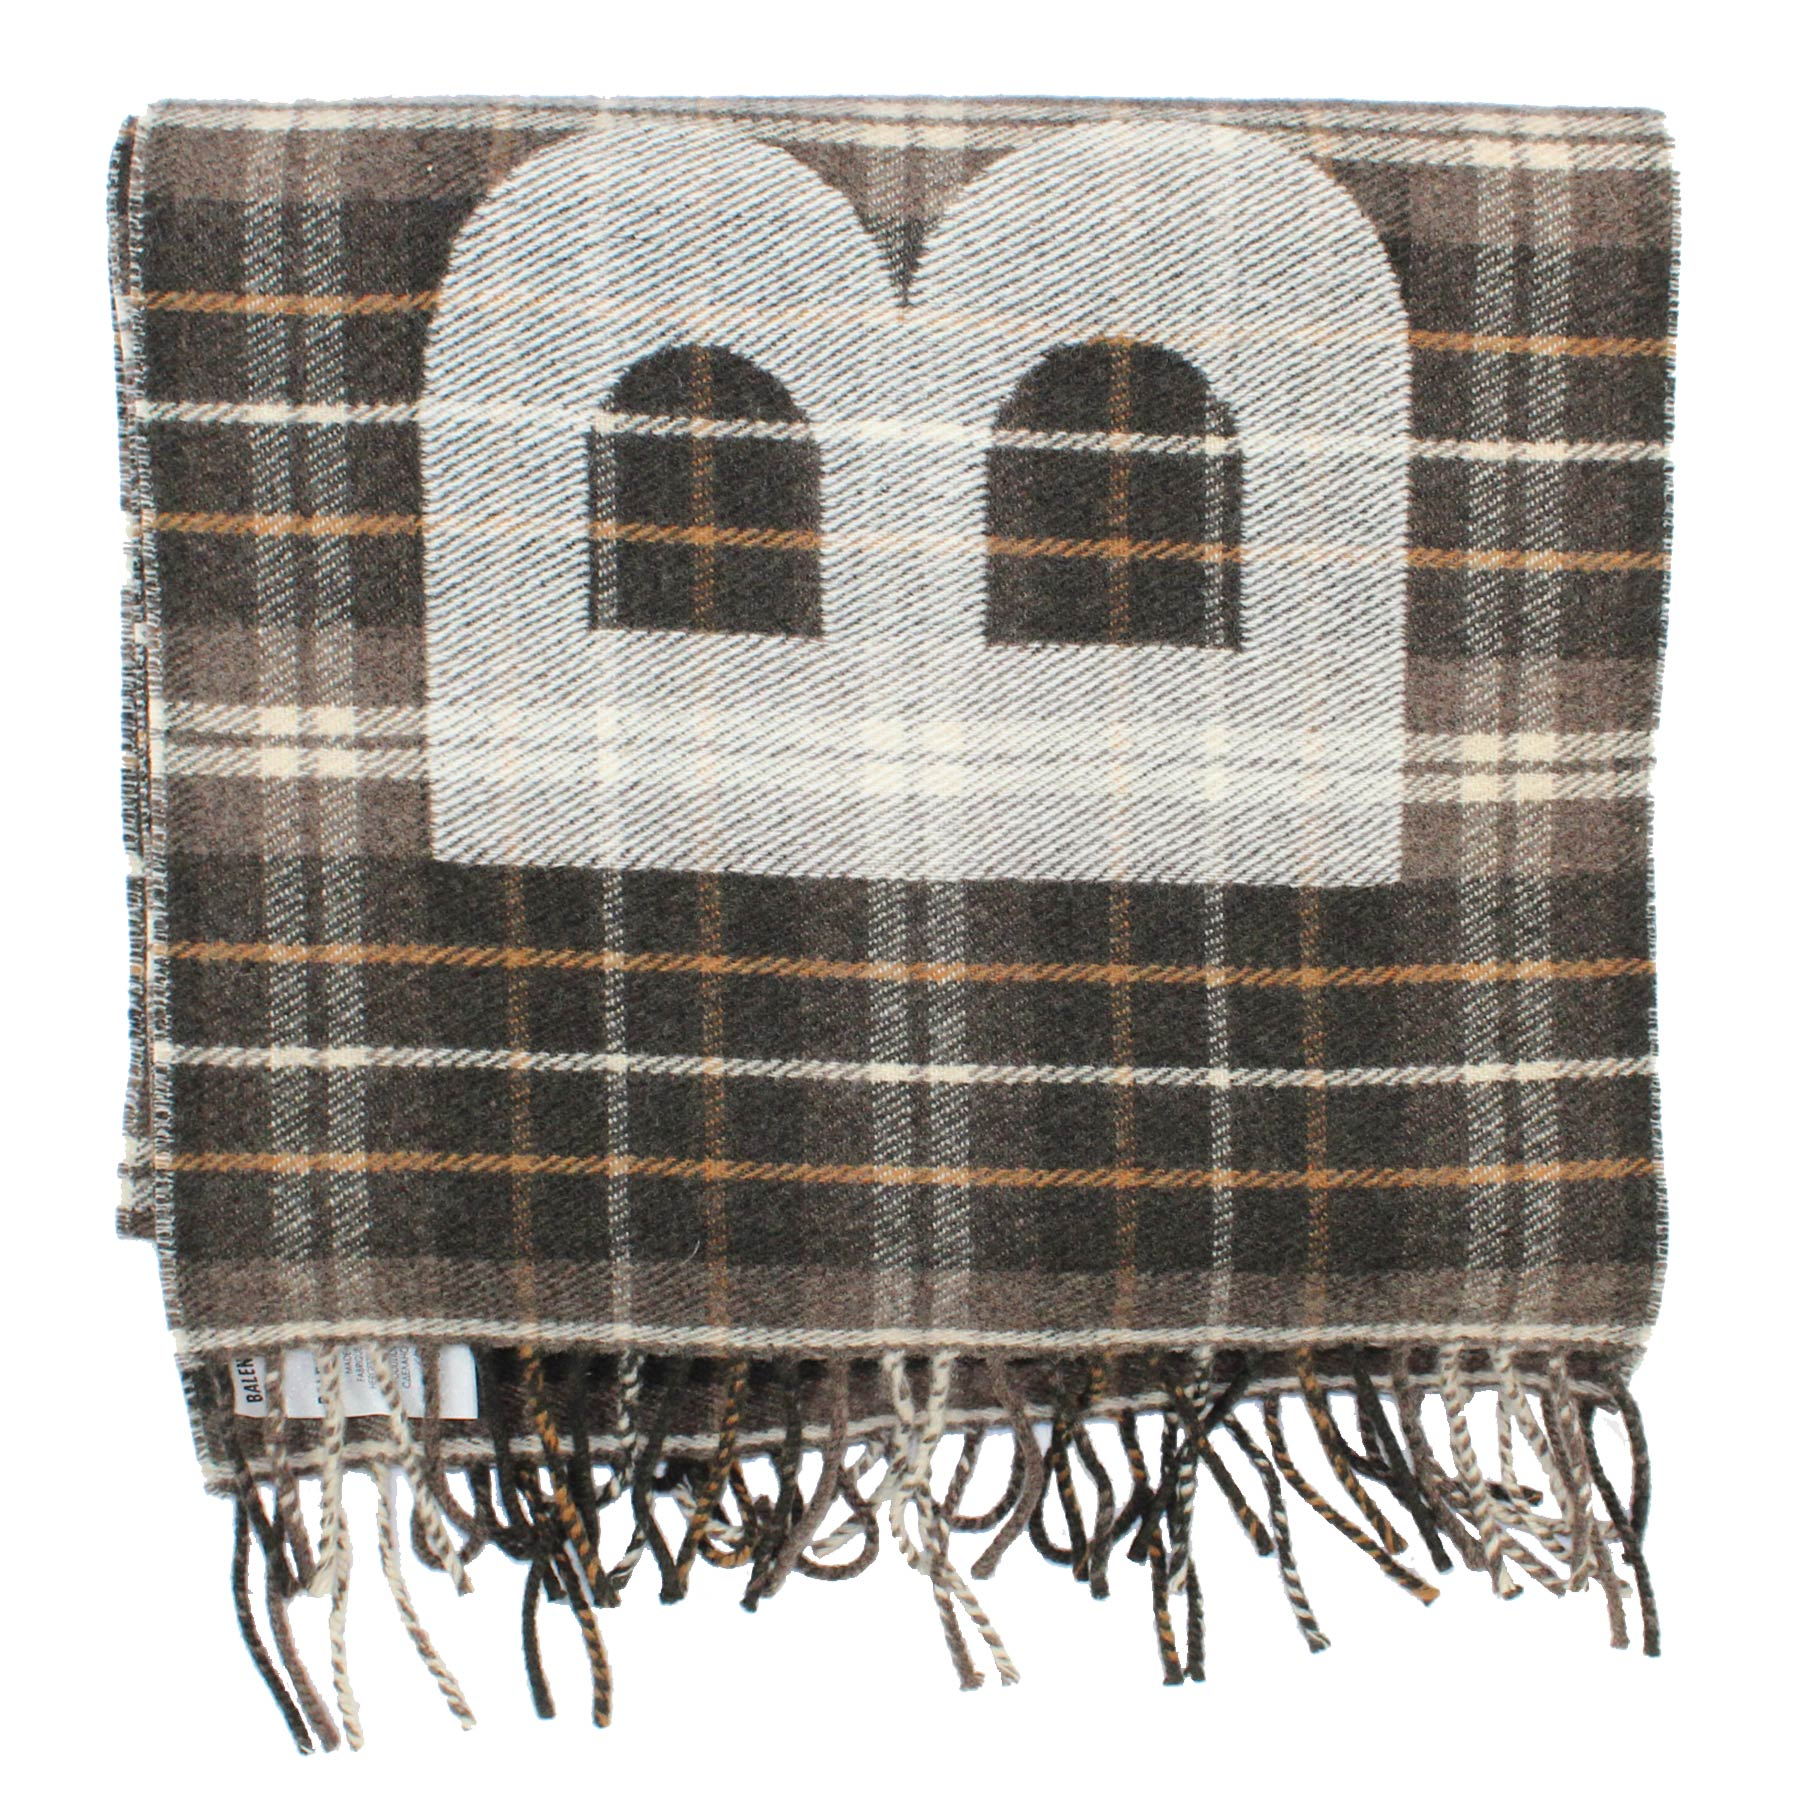 Balenciaga Scarf Brown Plaid Logo Wool Shawl